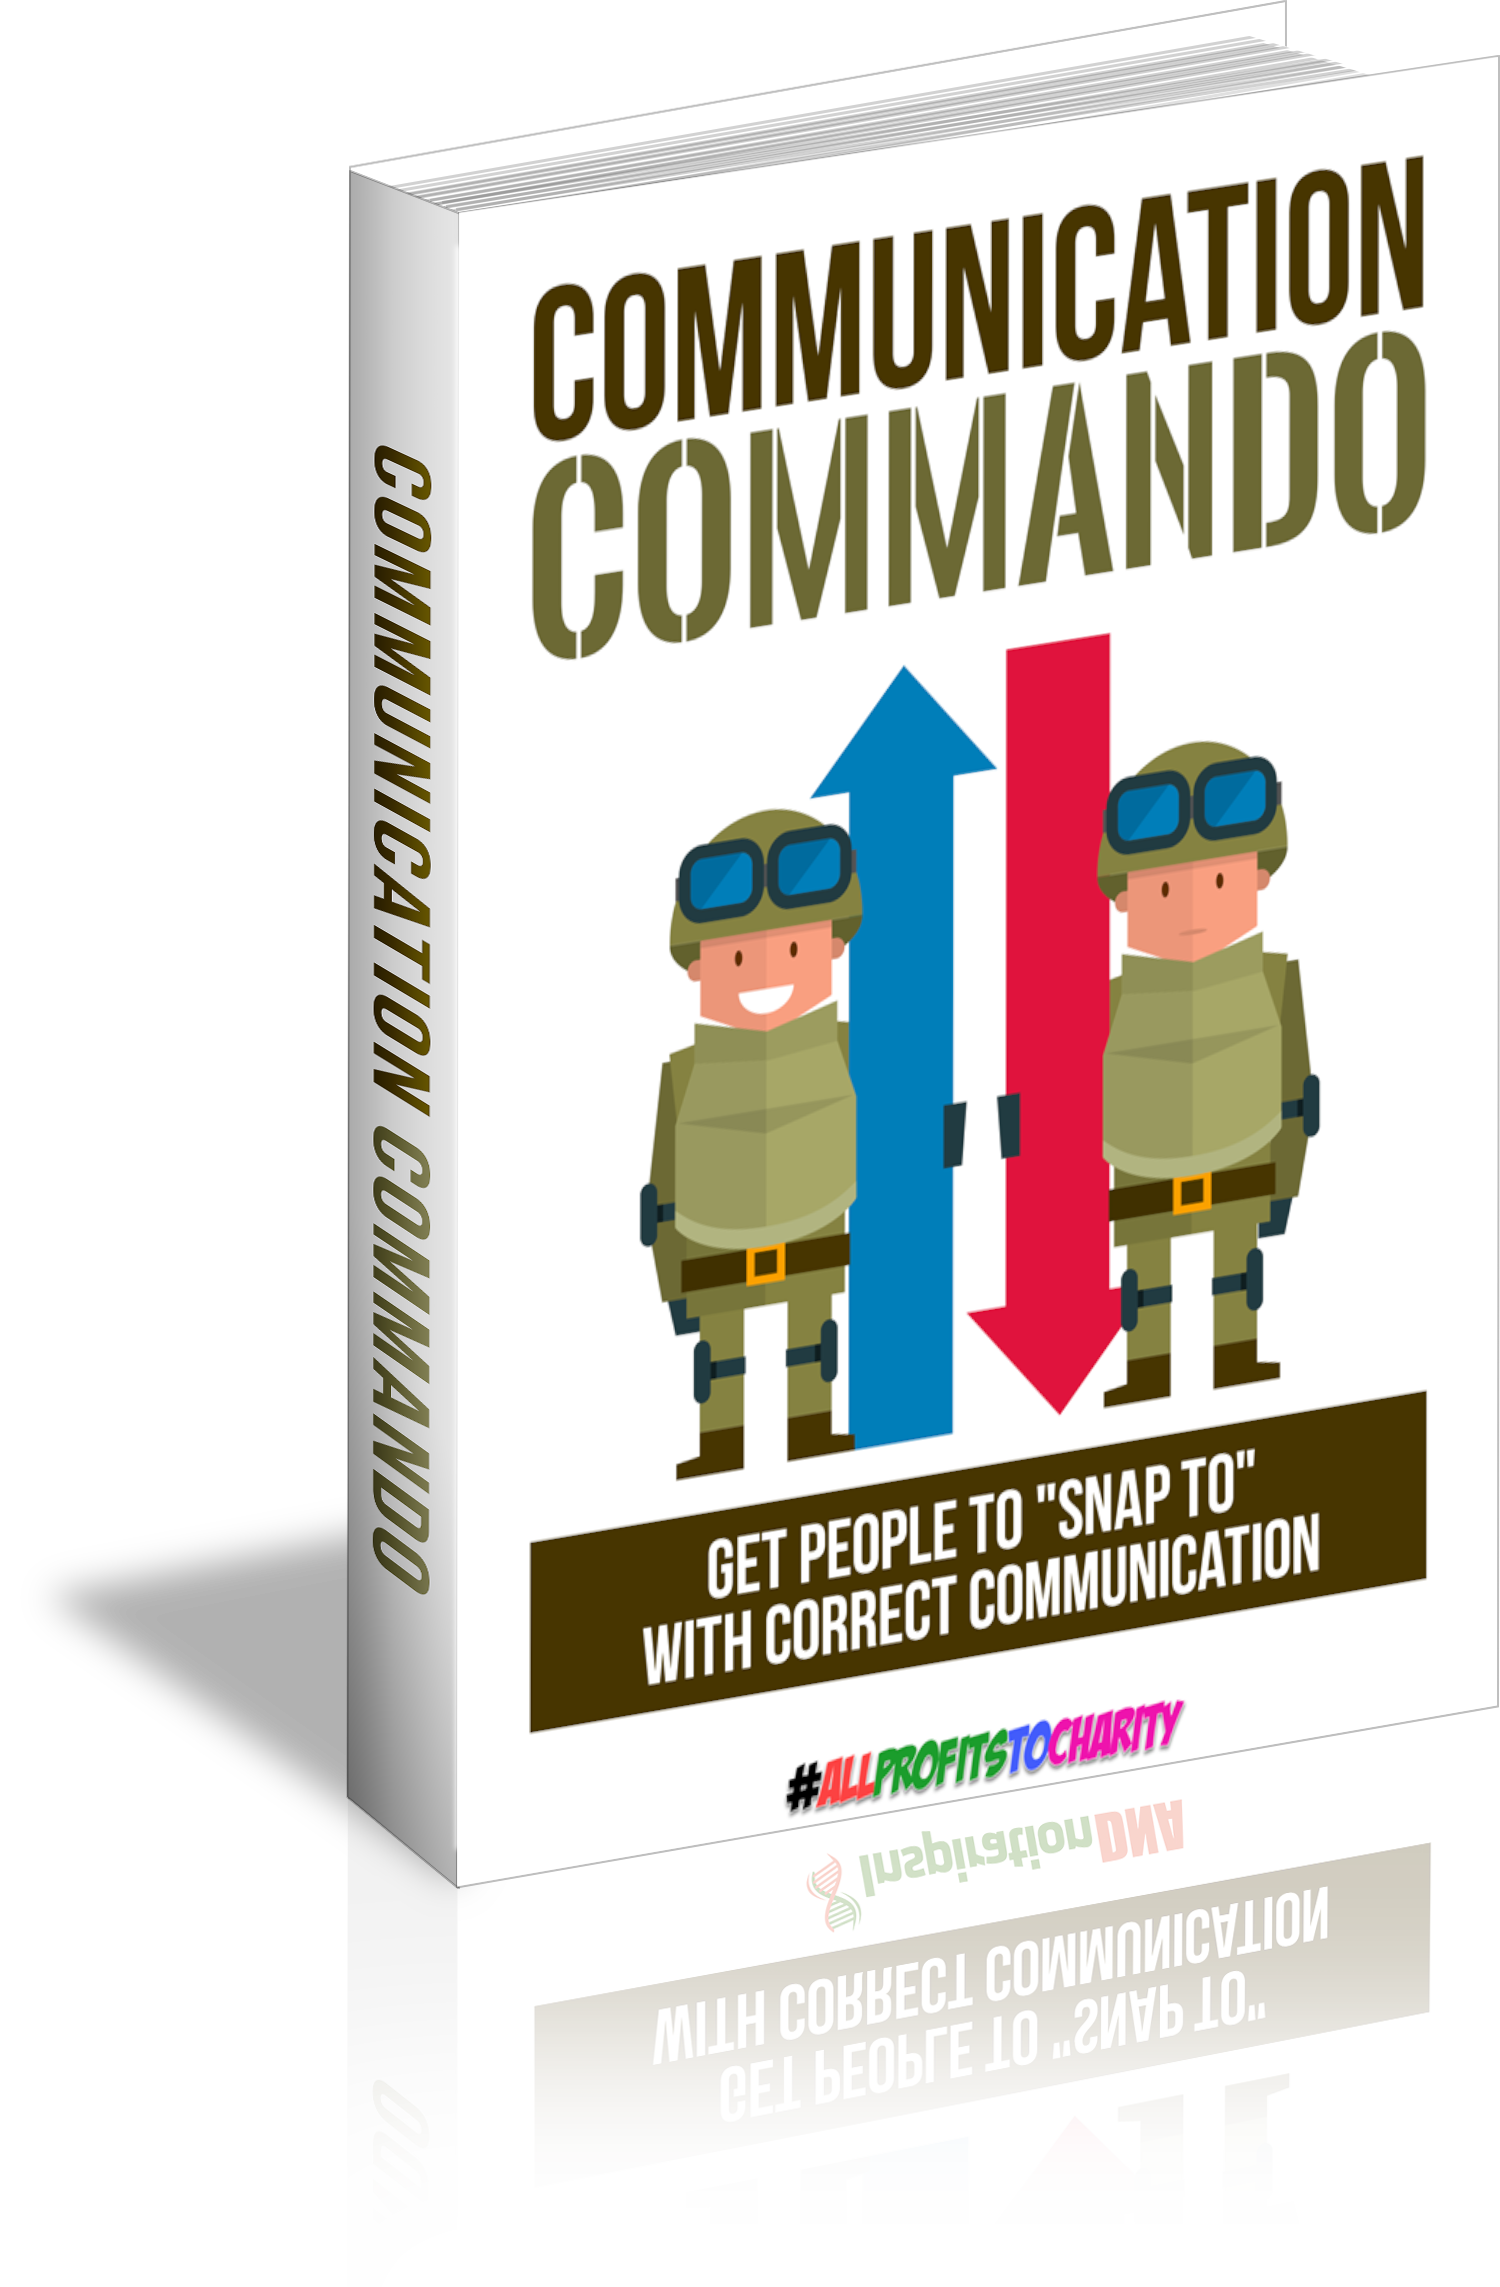 Communication Commando cover